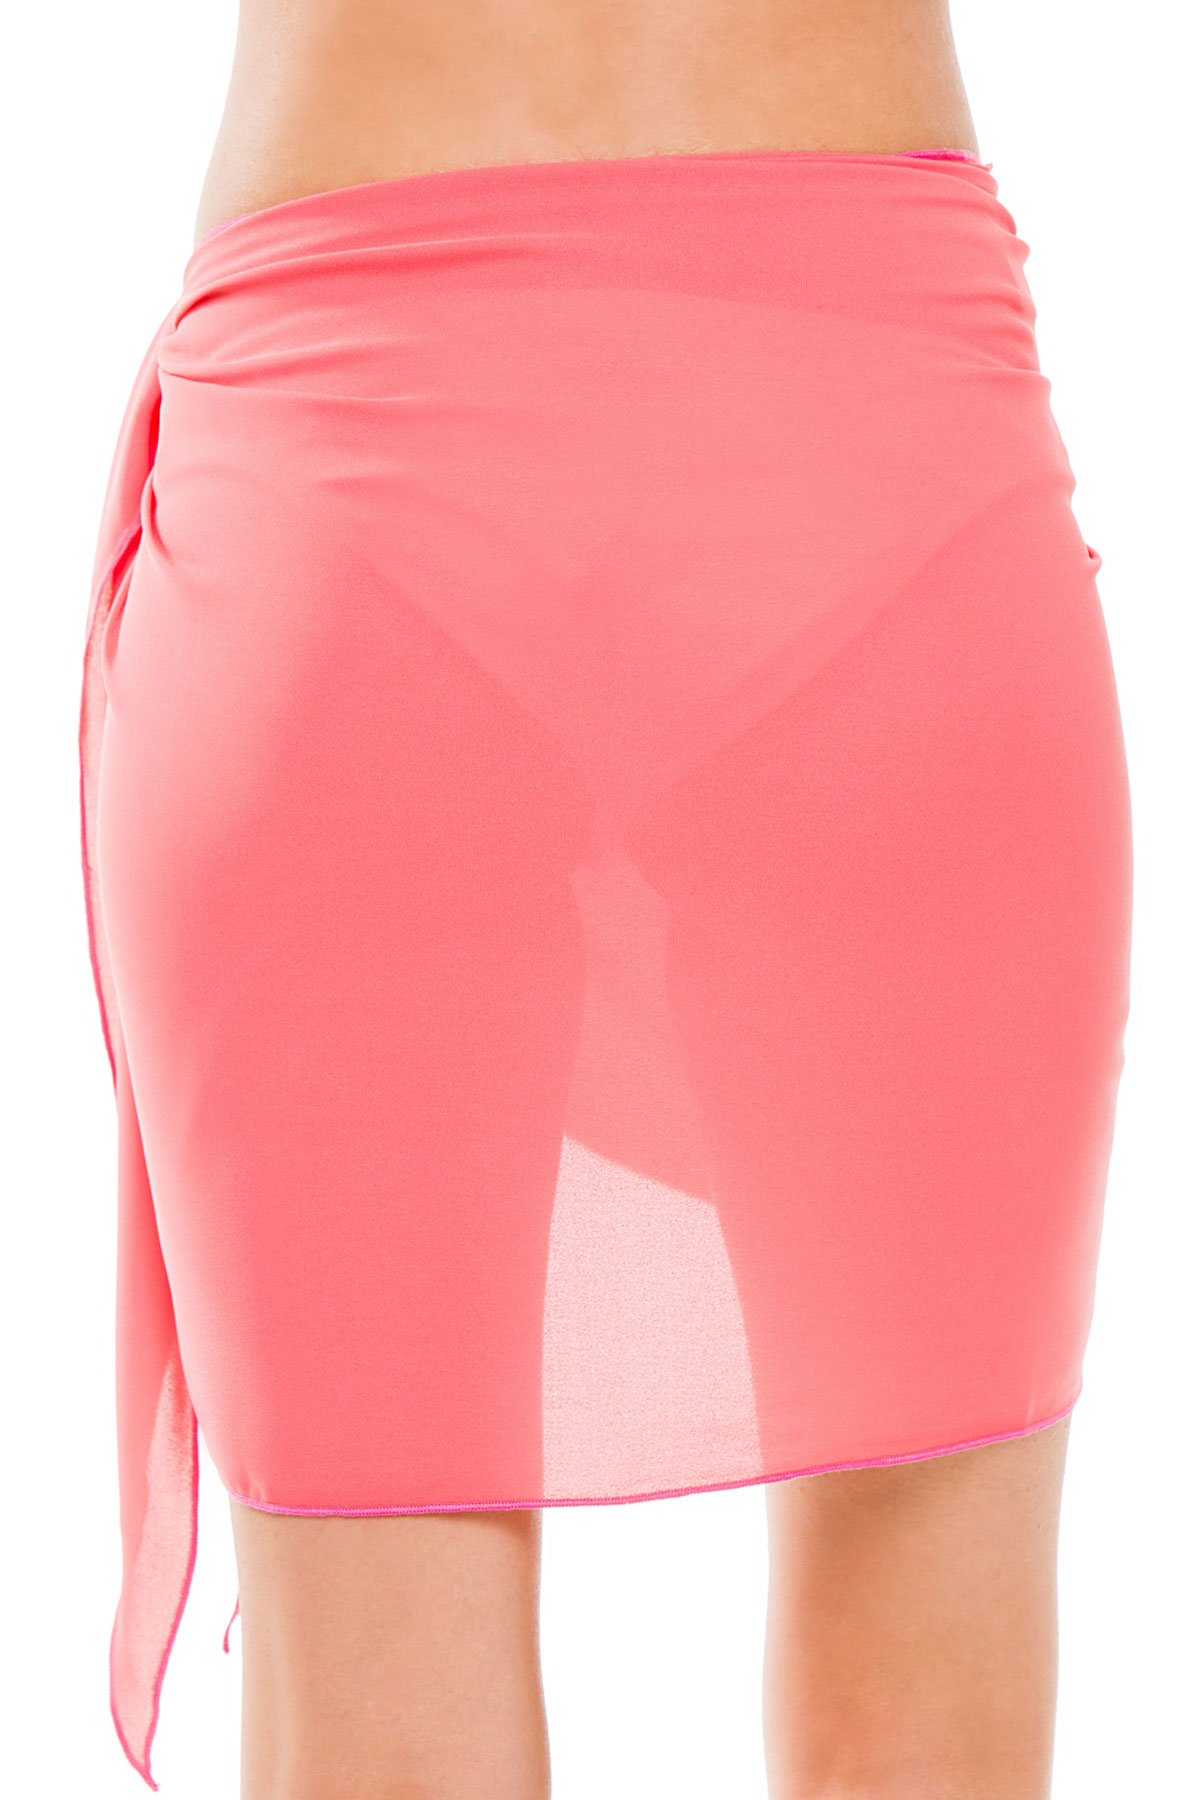 Sheer Short Cover Pareo - Coral 2